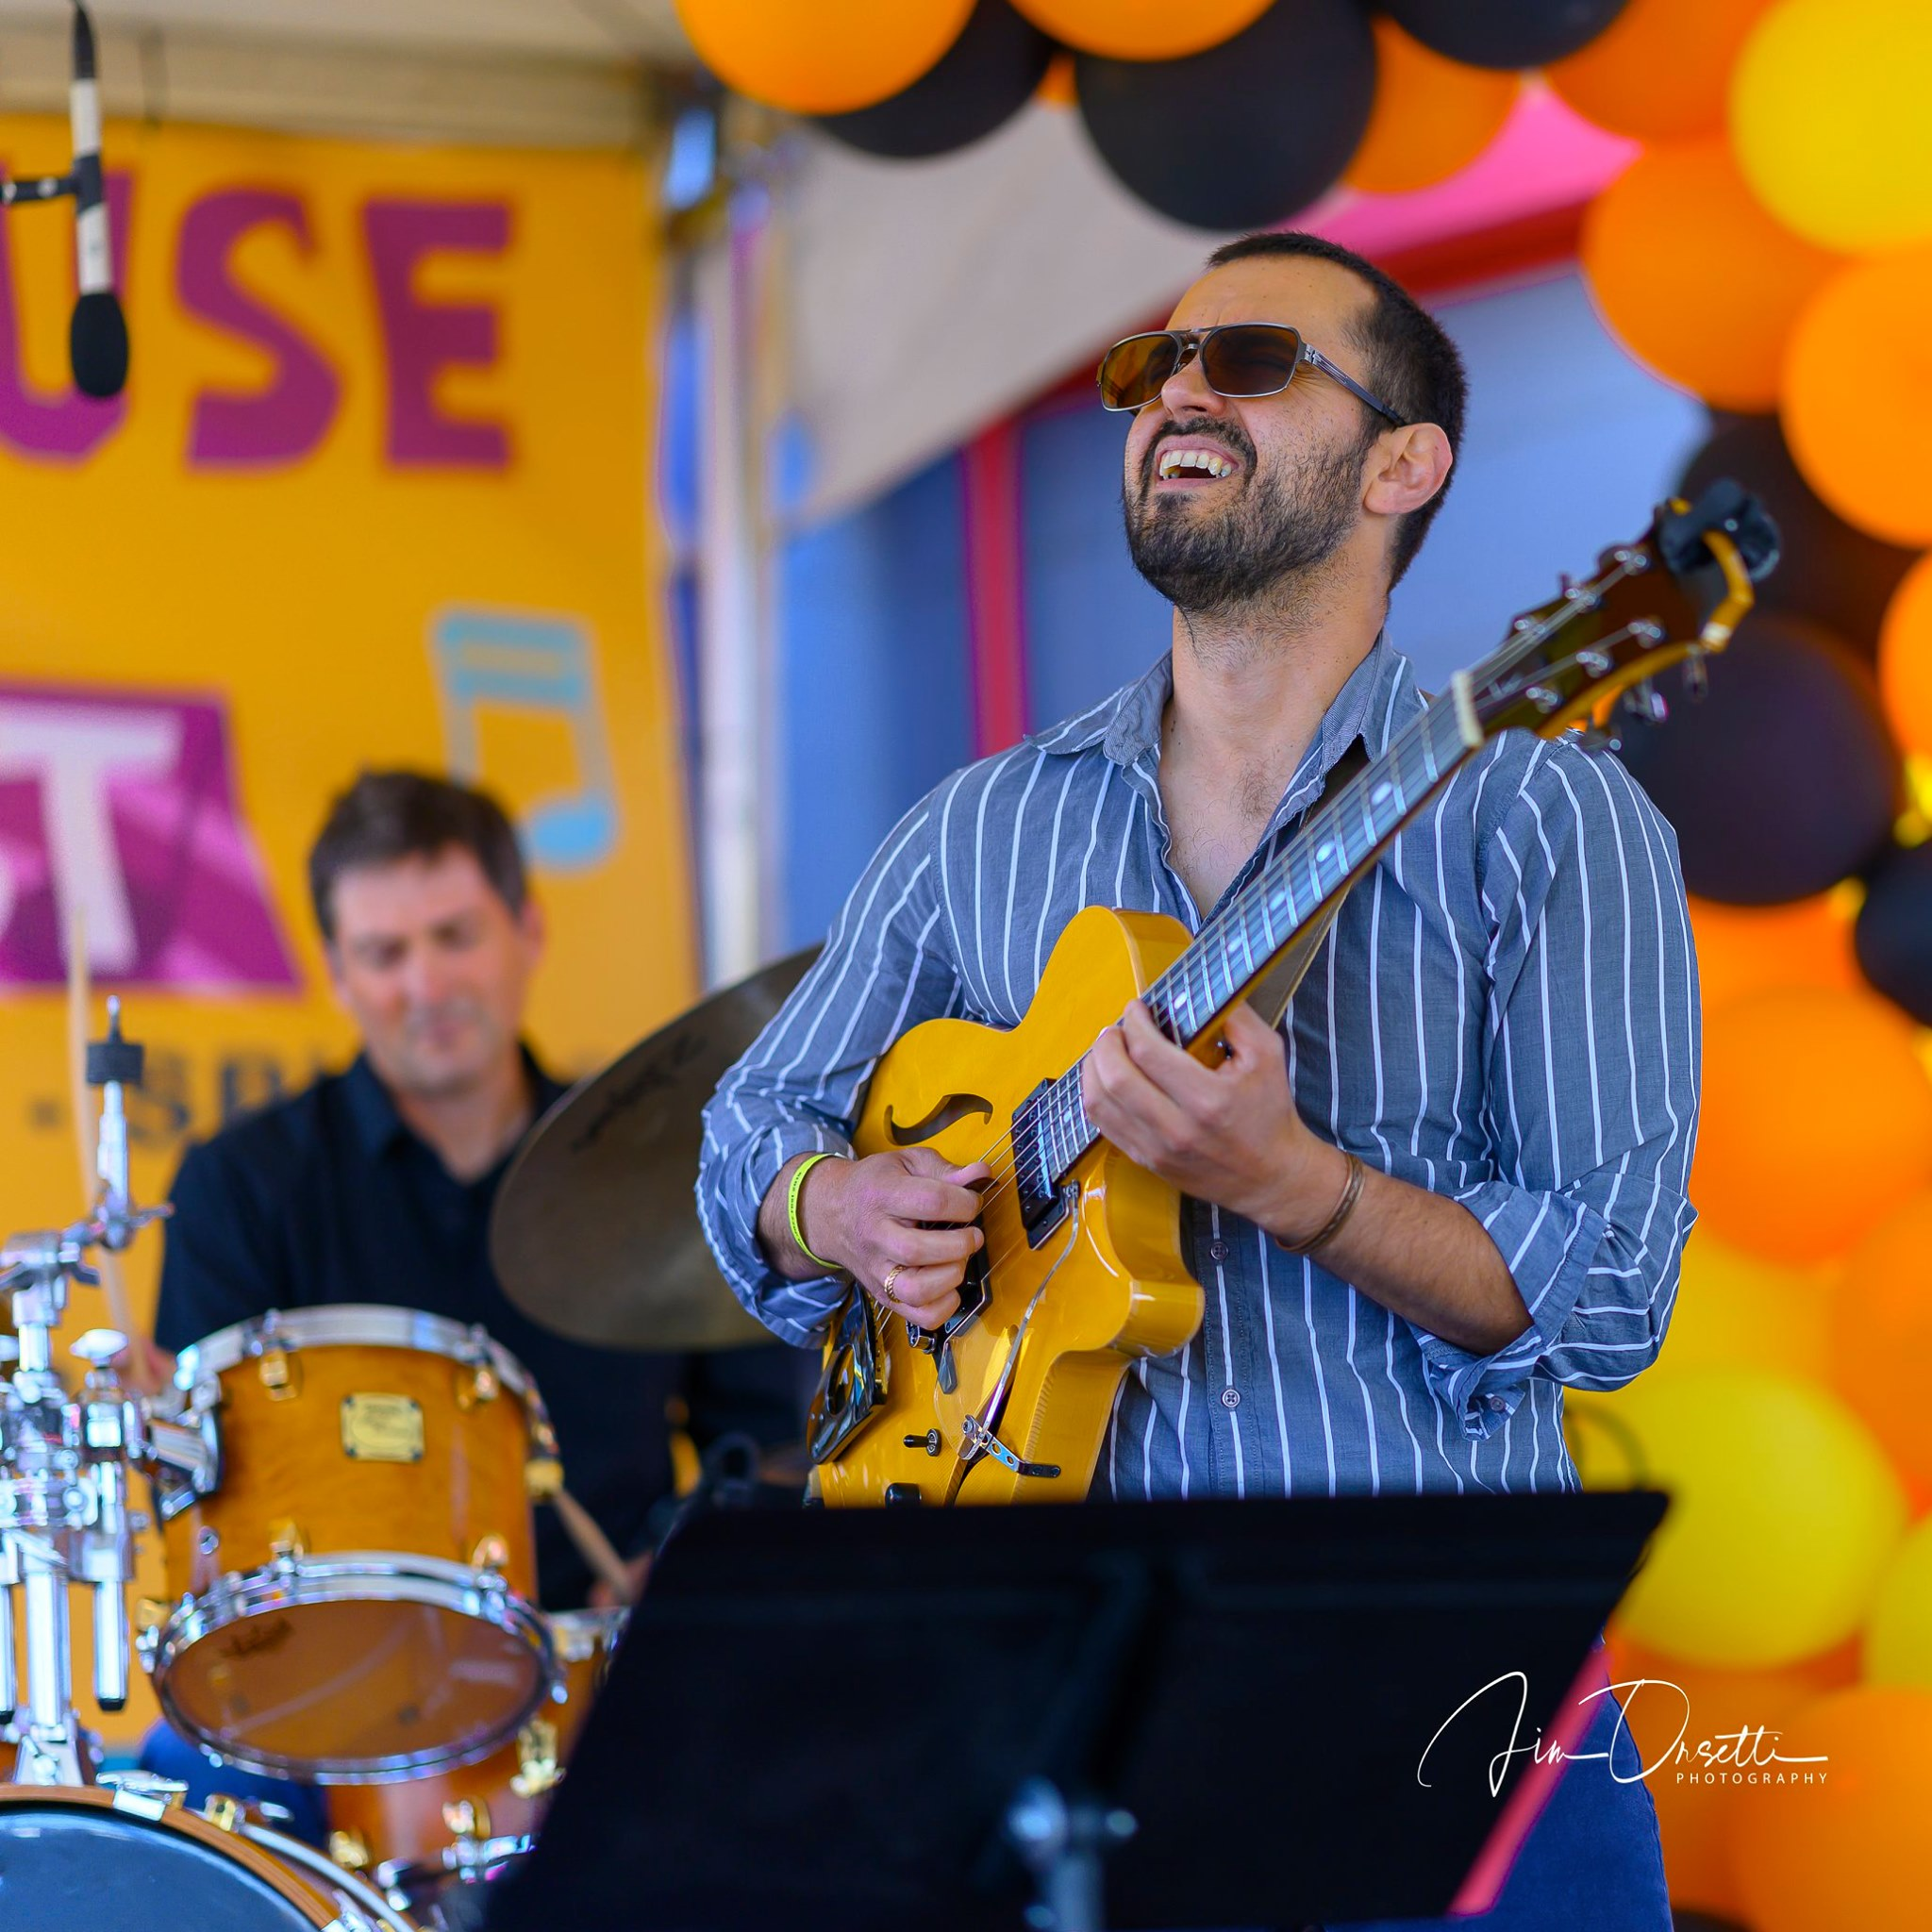 Hristo VItchev Organ Trio at the 2nd Annual 7 Mile House Jazz Fest 2019